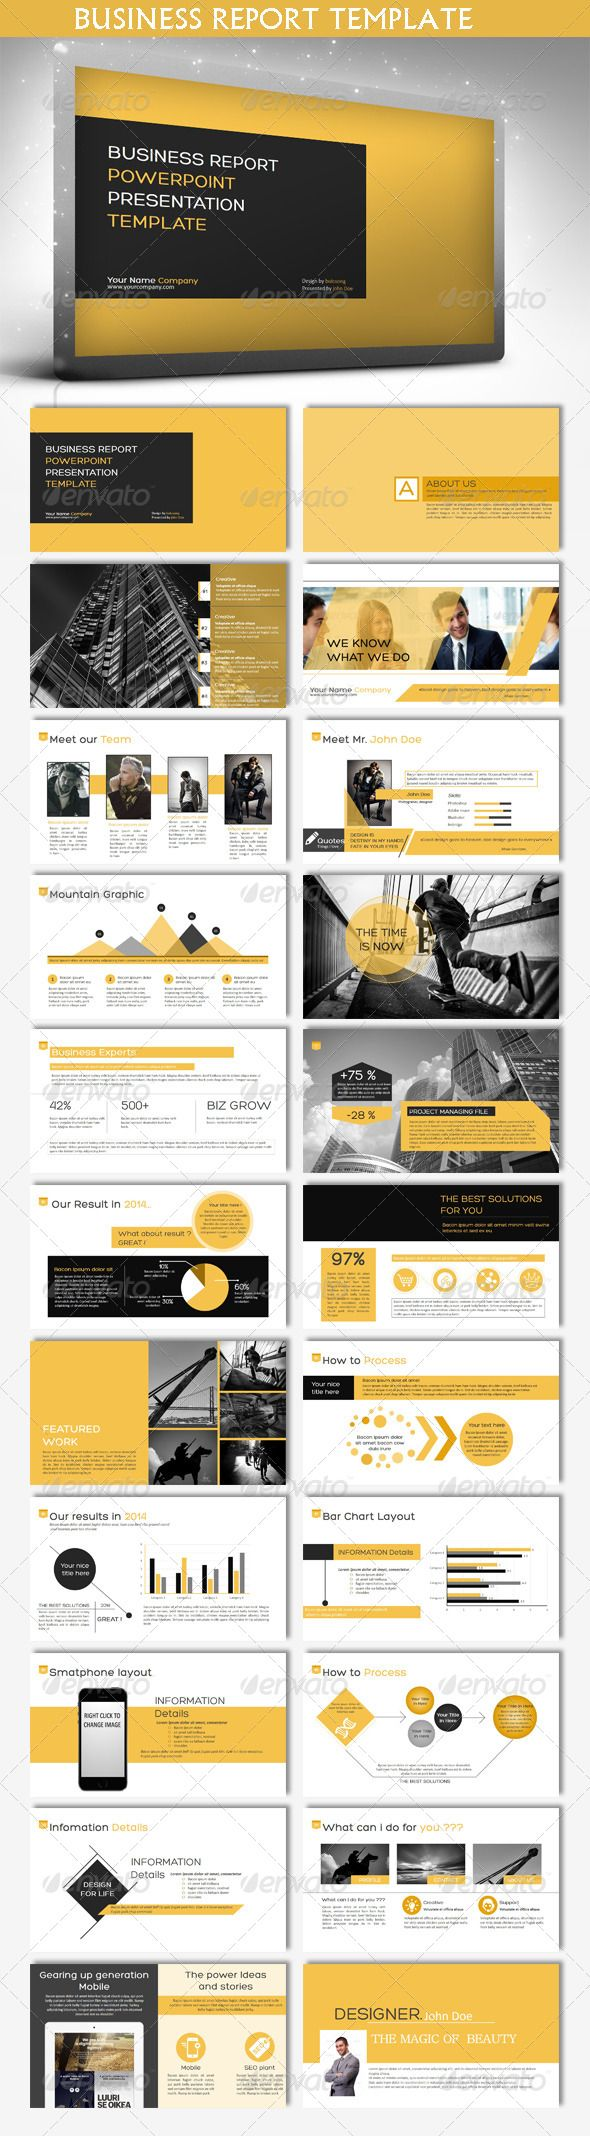 59 best beautiful powerpoint images on pinterest keynote template business report powerpoint template powerpoint templates powerpoint powerpointtemplate presentation toneelgroepblik Image collections